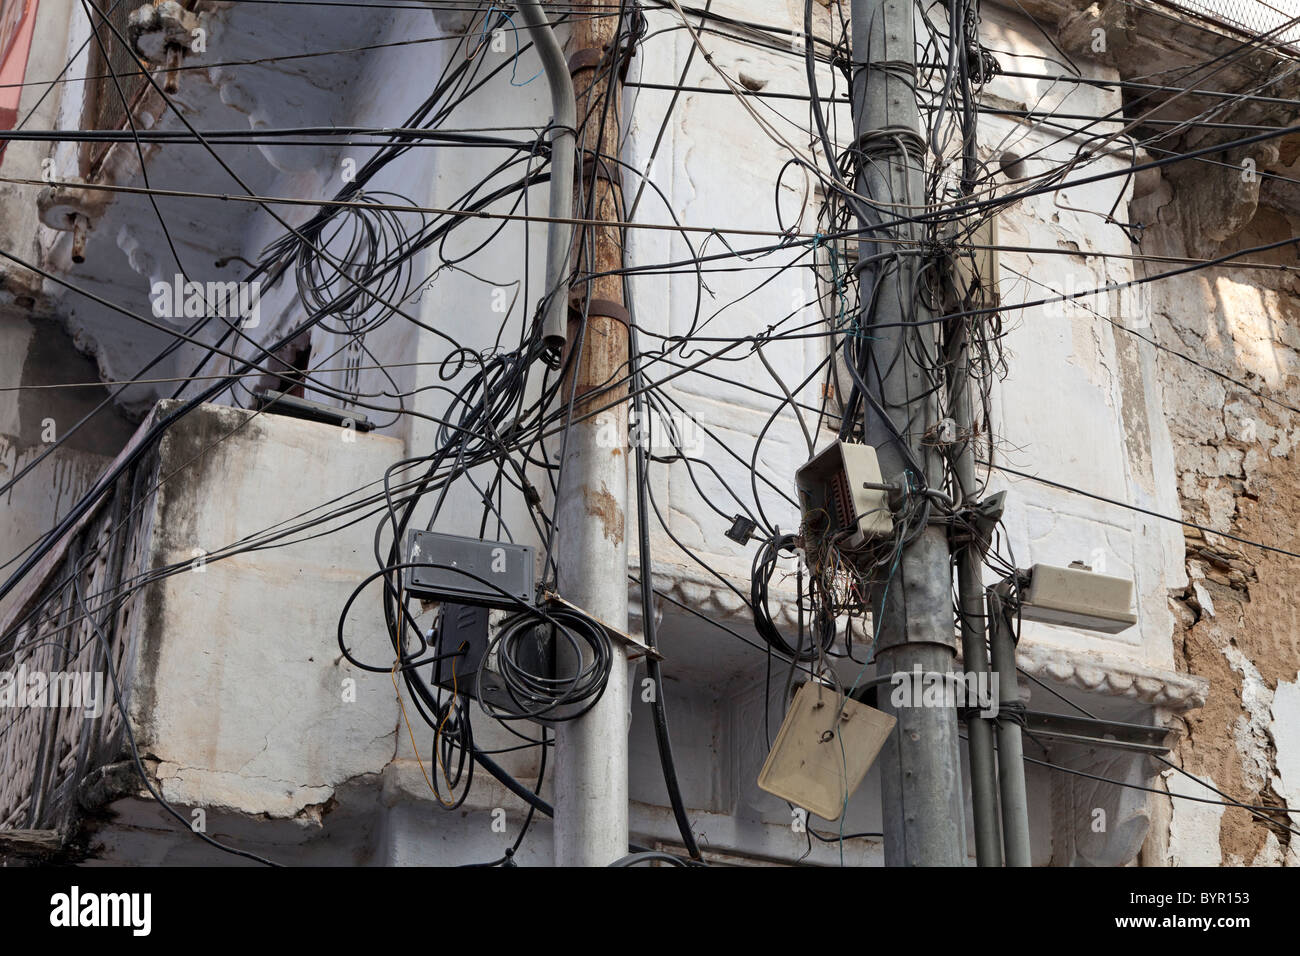 hight resolution of india rajasthan udaipur jumbled telephone wires stock photo central locking system wiring